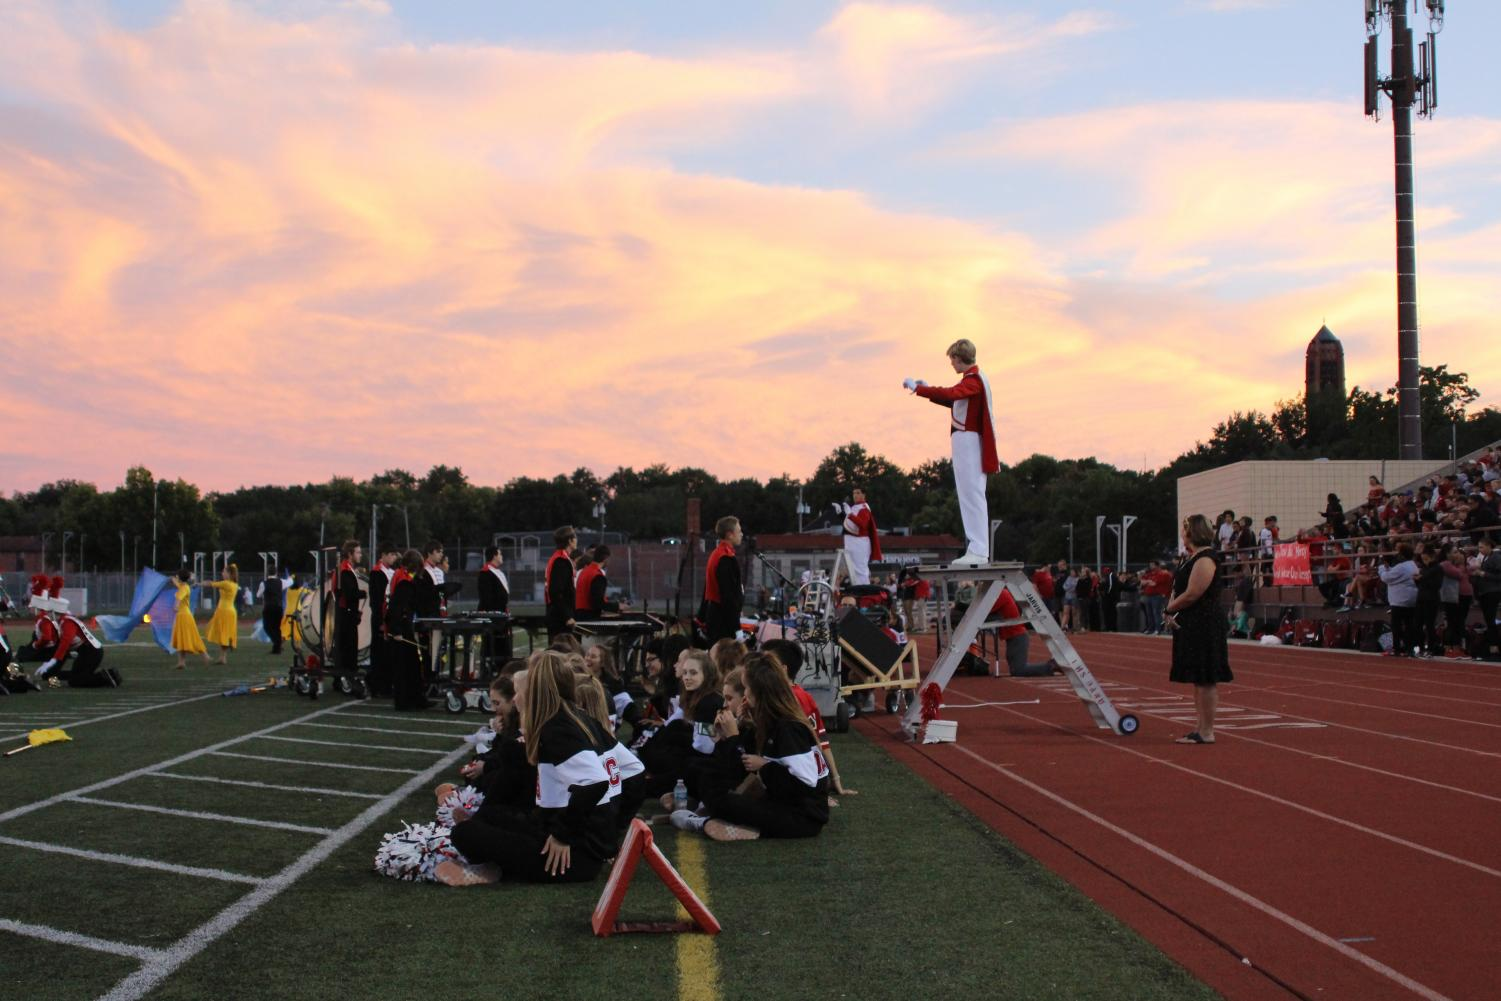 The sky provides a dramatic backdrop as Drum Major Luke Moberly (11) leads the LHS Marching Band in a song at the Homecoming football game on Friday, Sept. 21, 2018 at Beechner Athletic Complex. Saxophone player Jacob Vanderford (11) sings a solo during the performance. The Links defeated Omaha Central 49-6. Photo by Anthony Torres